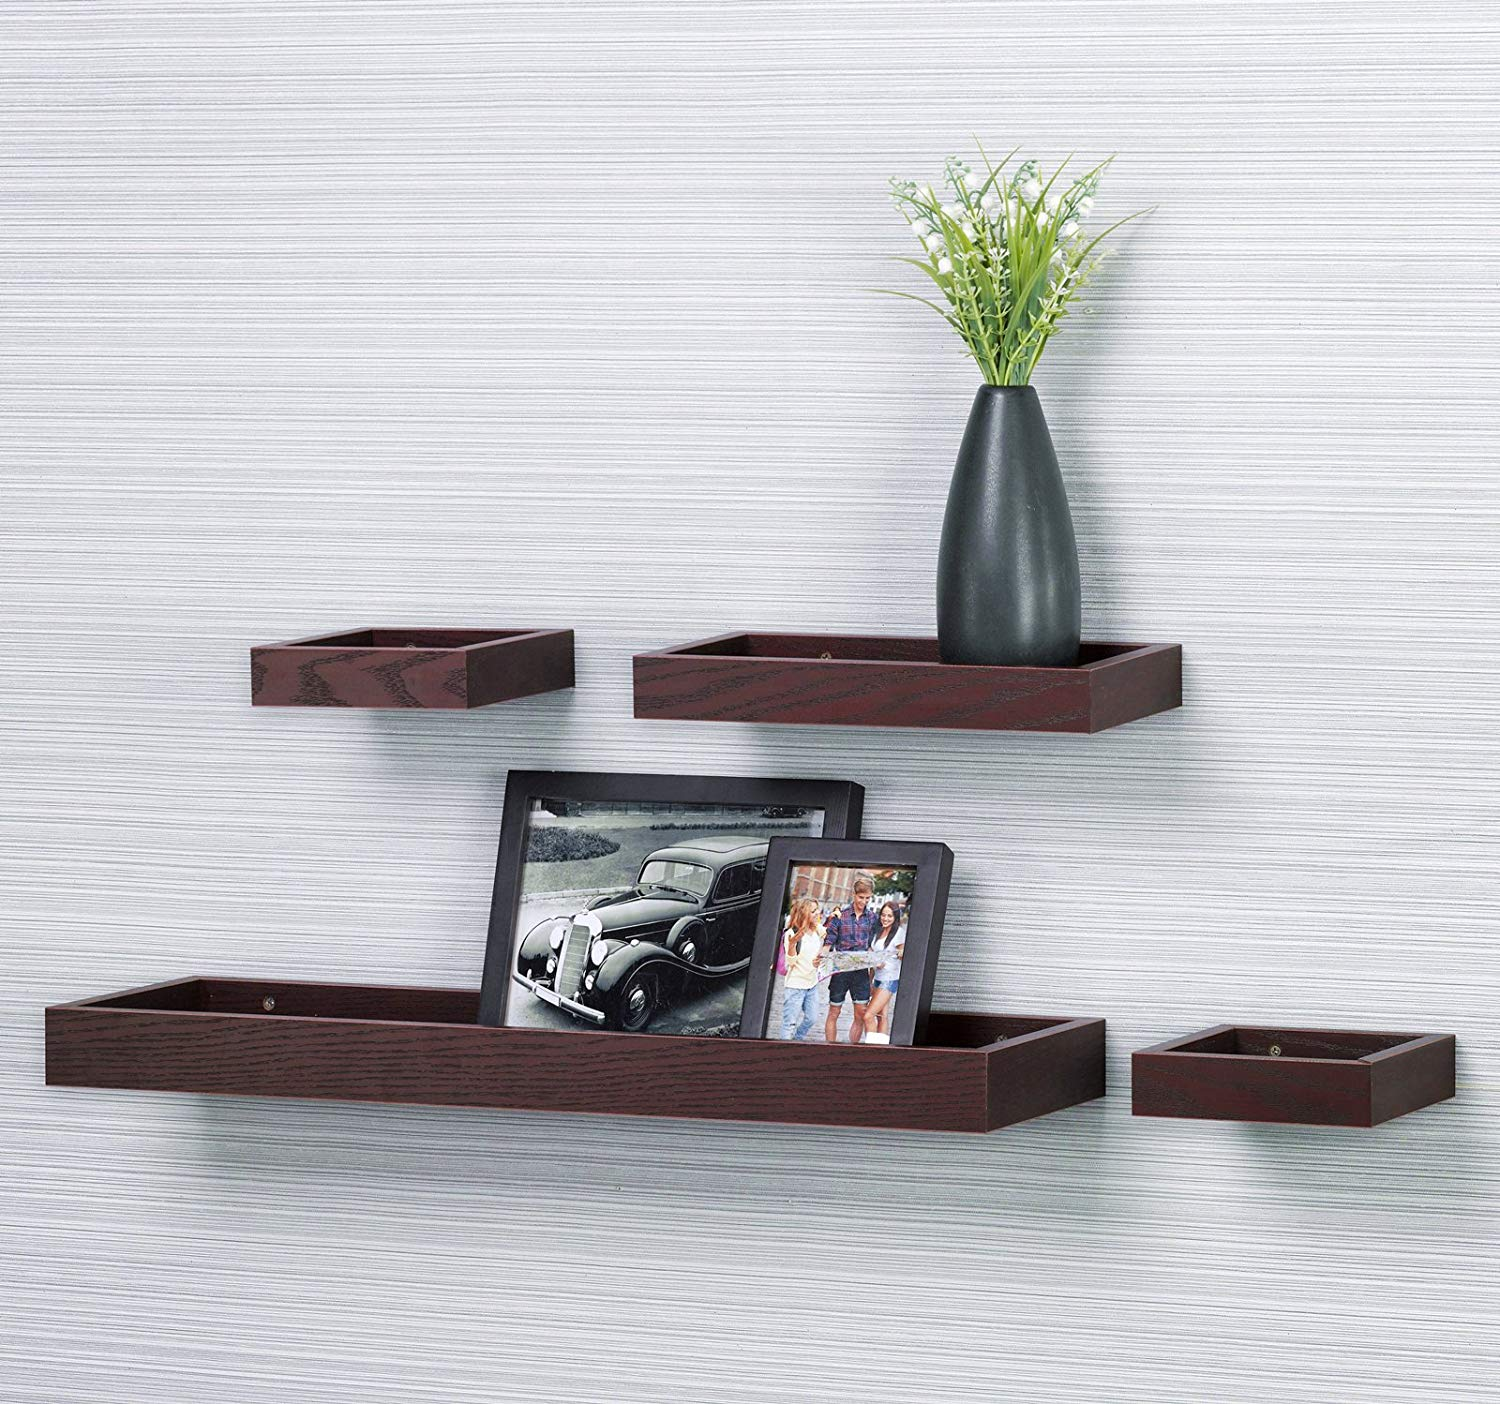 multilength pieces wall shelf floating ledge tray dark cherry shelves furniture red oak length set home kitchen small computer desk white reverse brackets under cabinet cable box